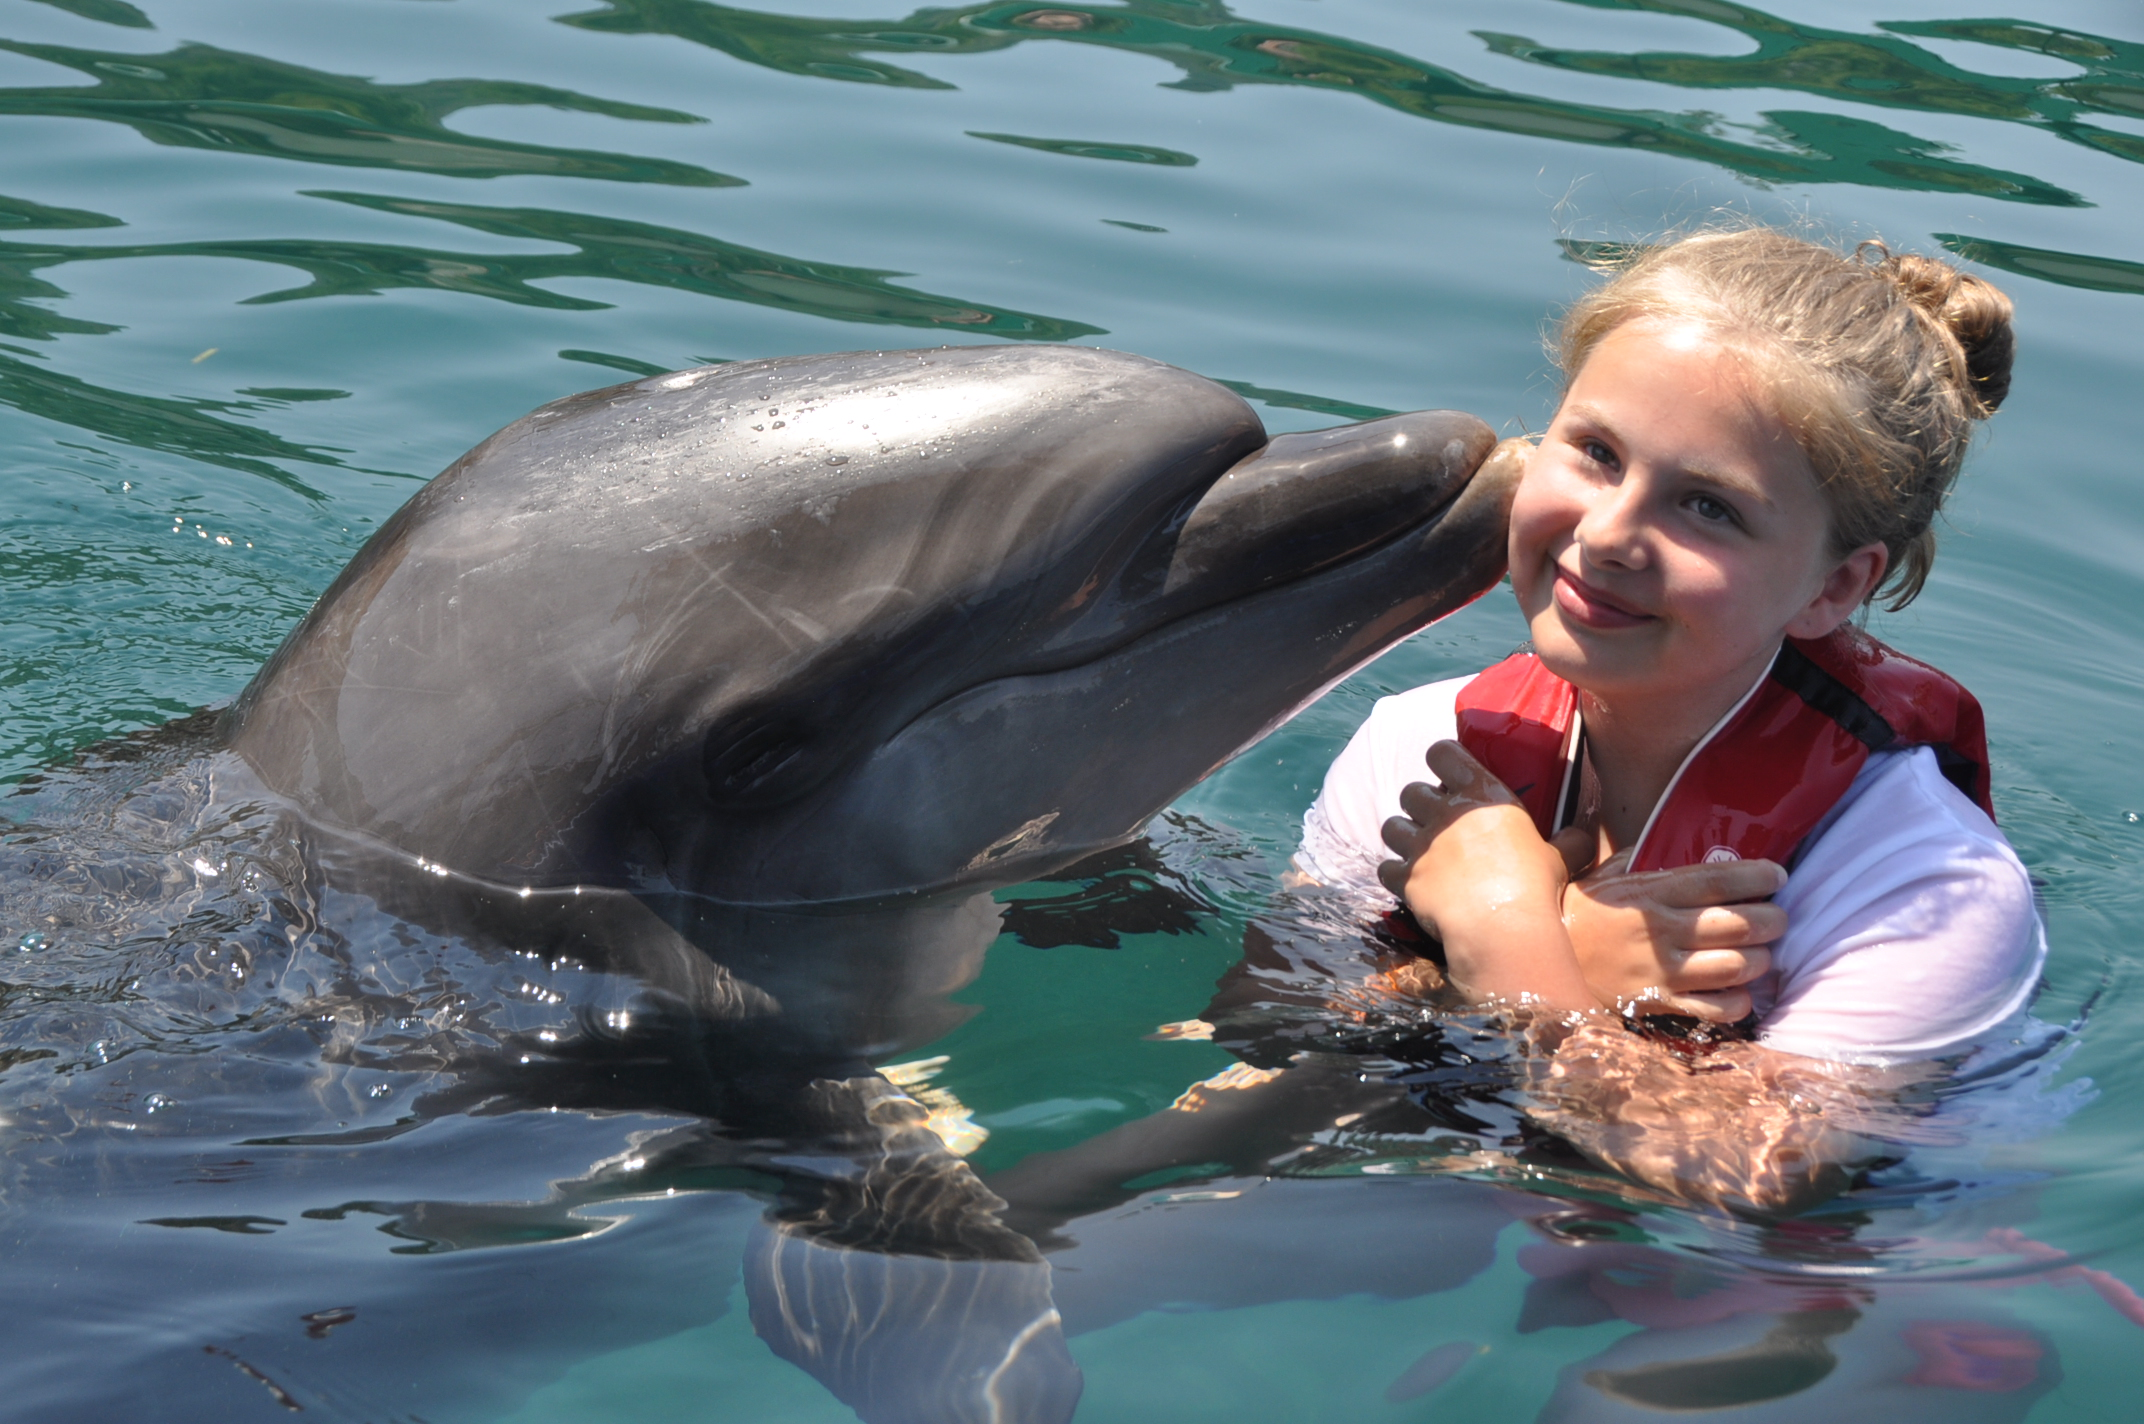 FULL DAY TO MARMARIS AND SWIM WITH THE DOLPHINS